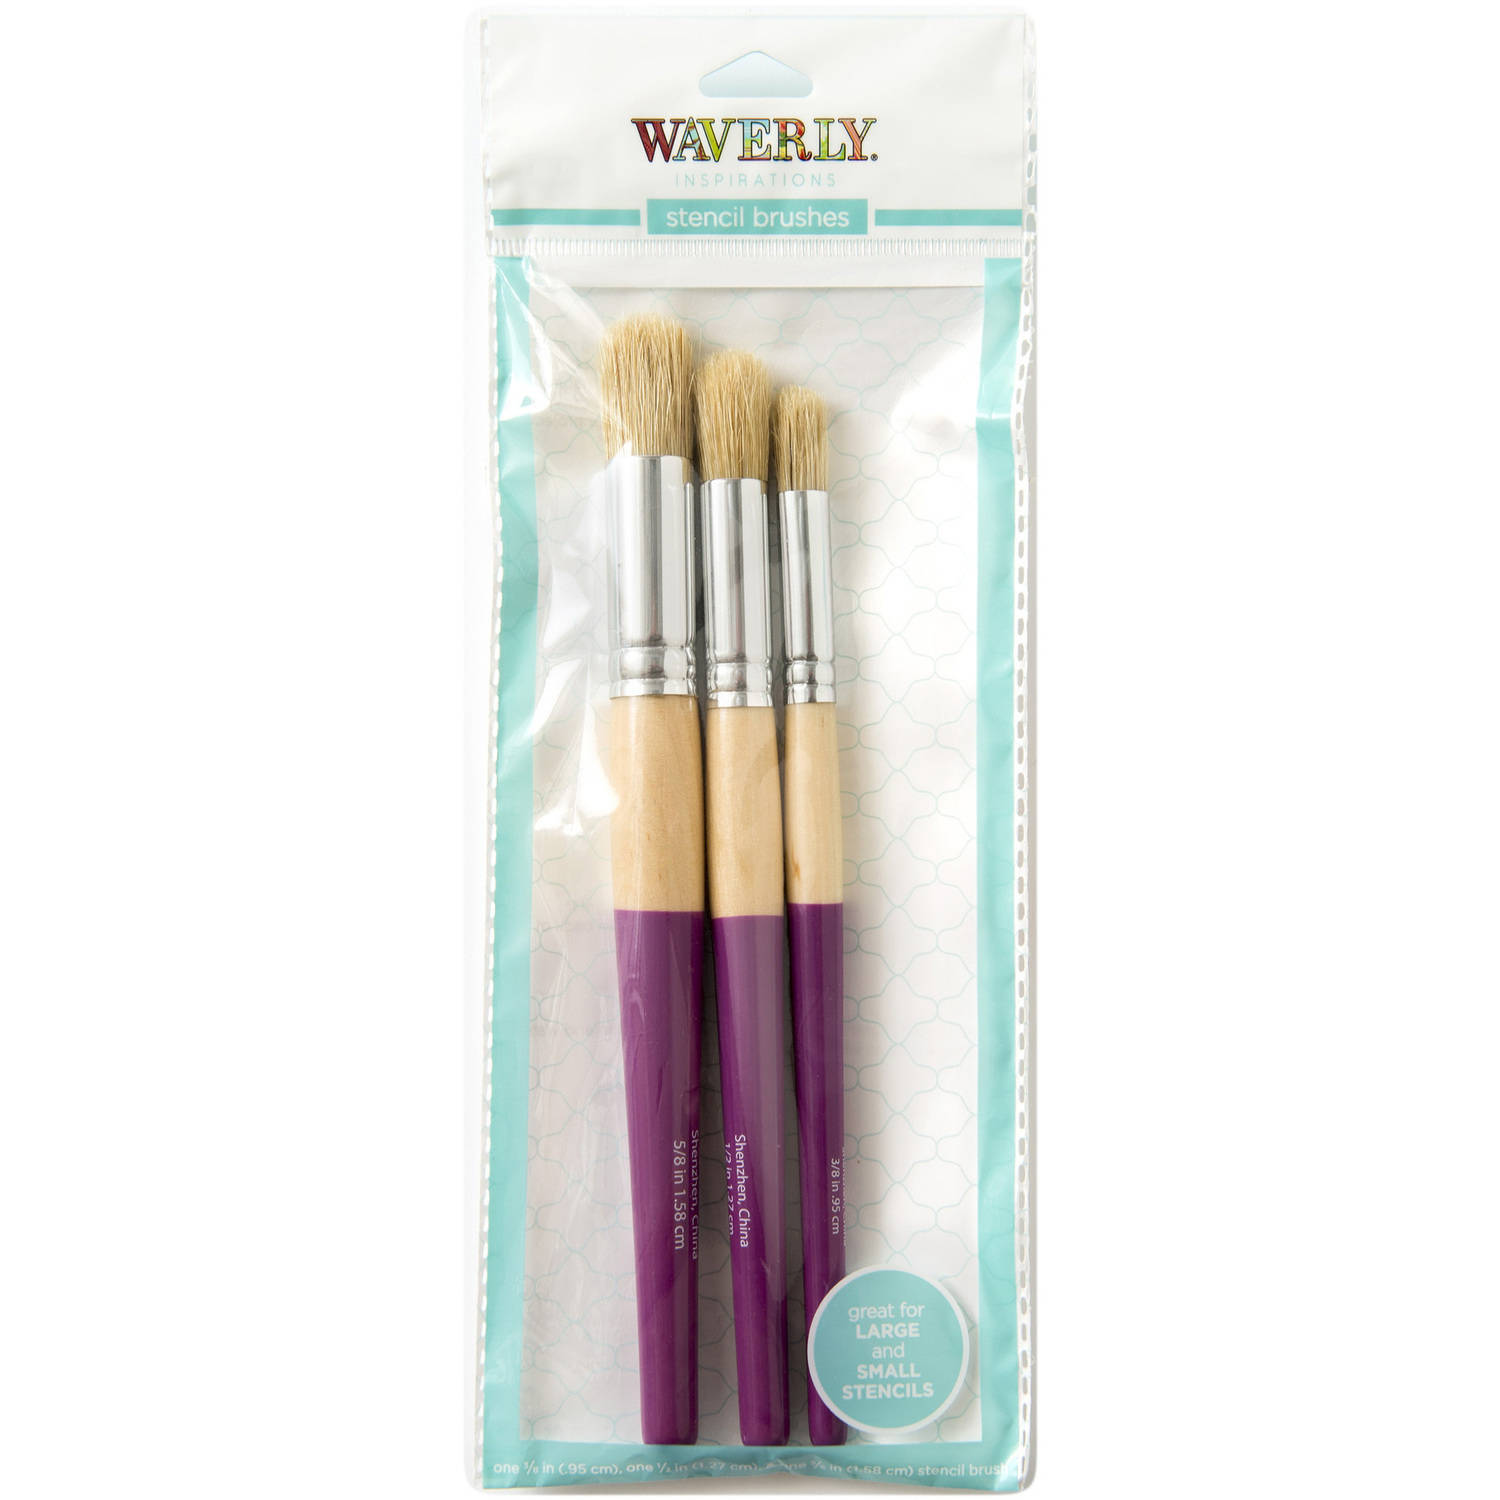 Waverly Inspirations 3-Piece Stencil Brush Set for Acrylic Paint